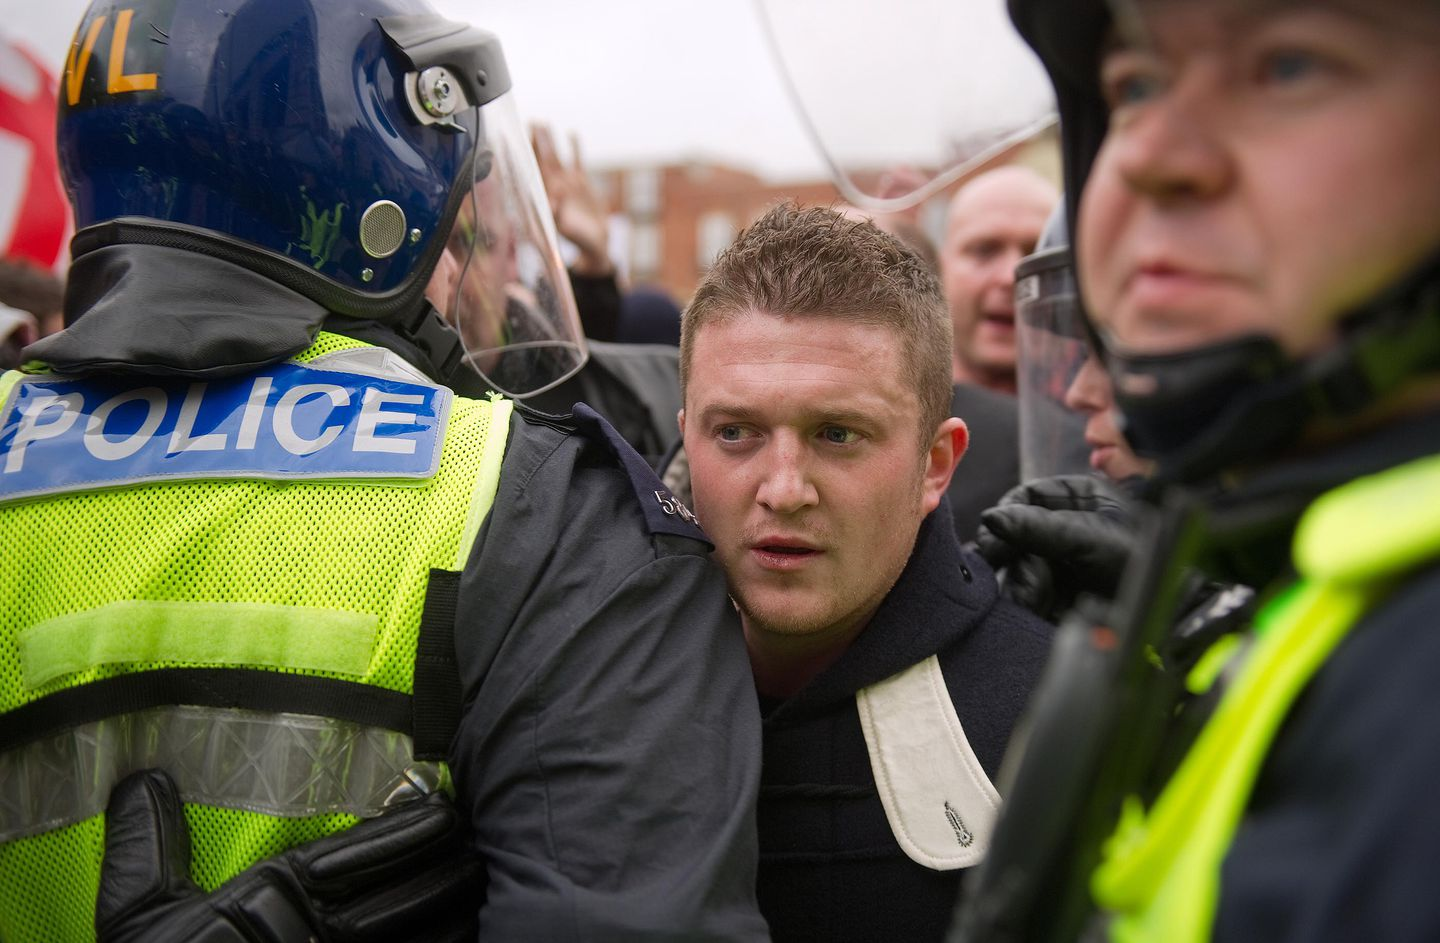 Stephen Yaxley-Lennon, who now is known as Tommy Robinson, at a rally in 2011.